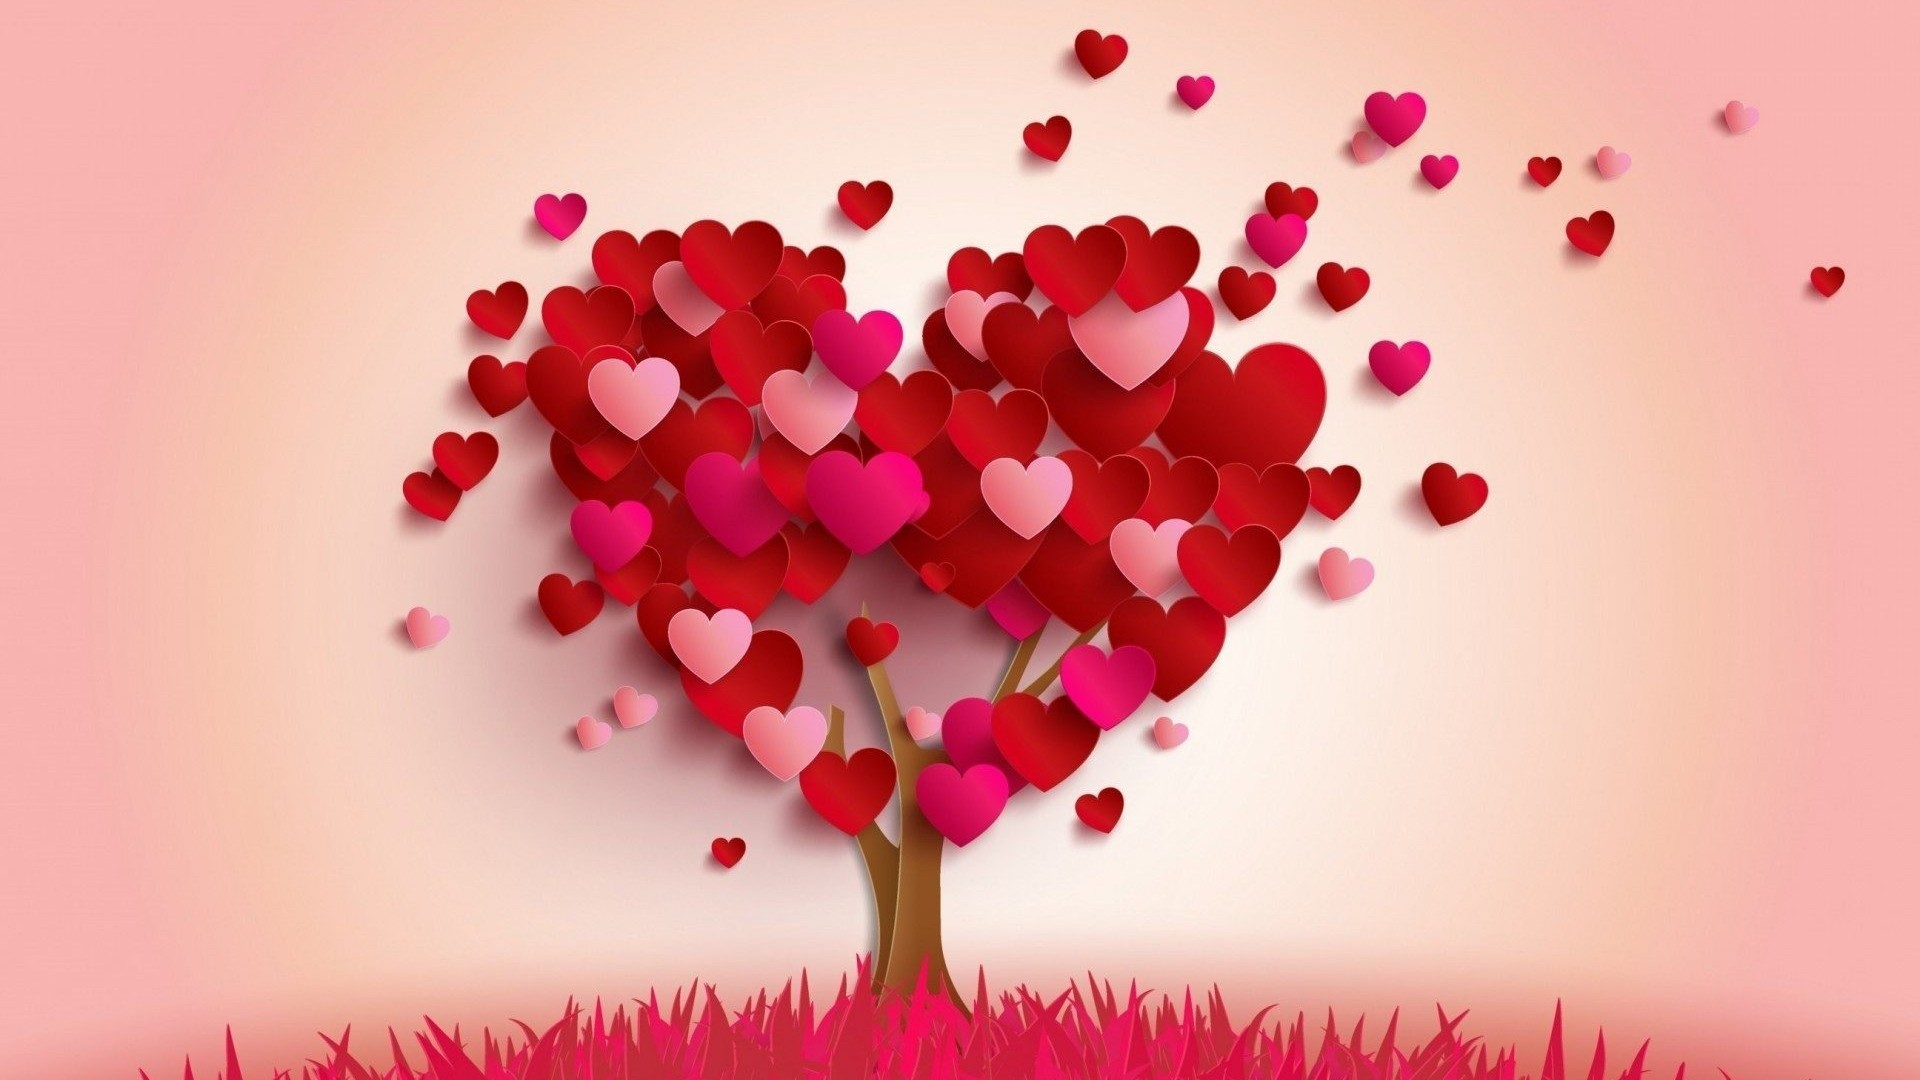 Love wallpaper ·① Download free beautiful backgrounds for ...